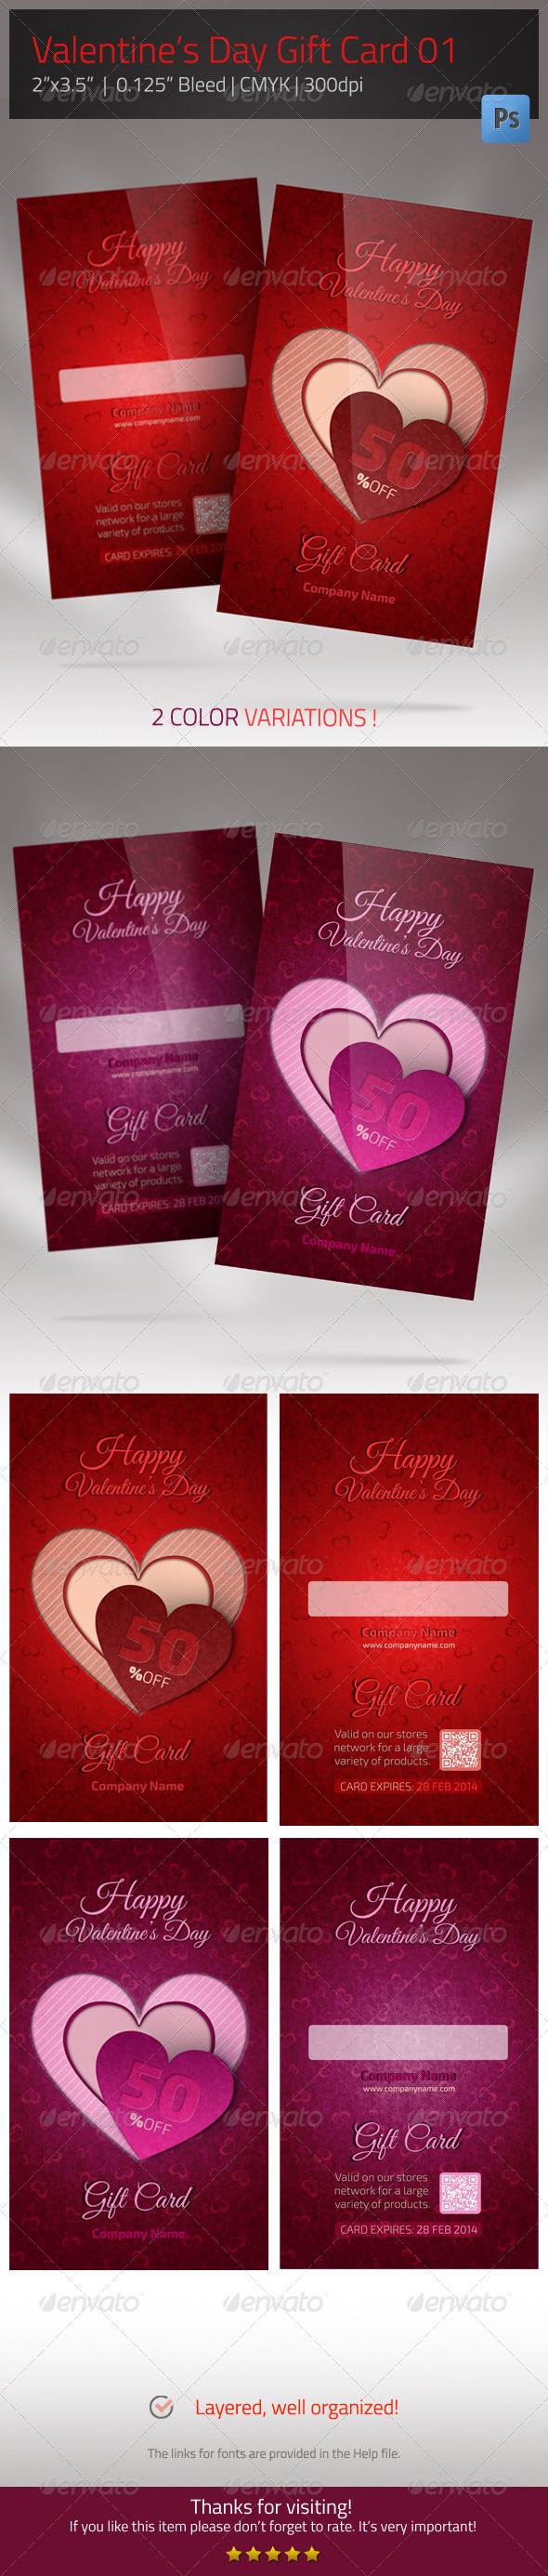 Gift Card for Valentines Day  - Loyalty Cards Cards & Invites